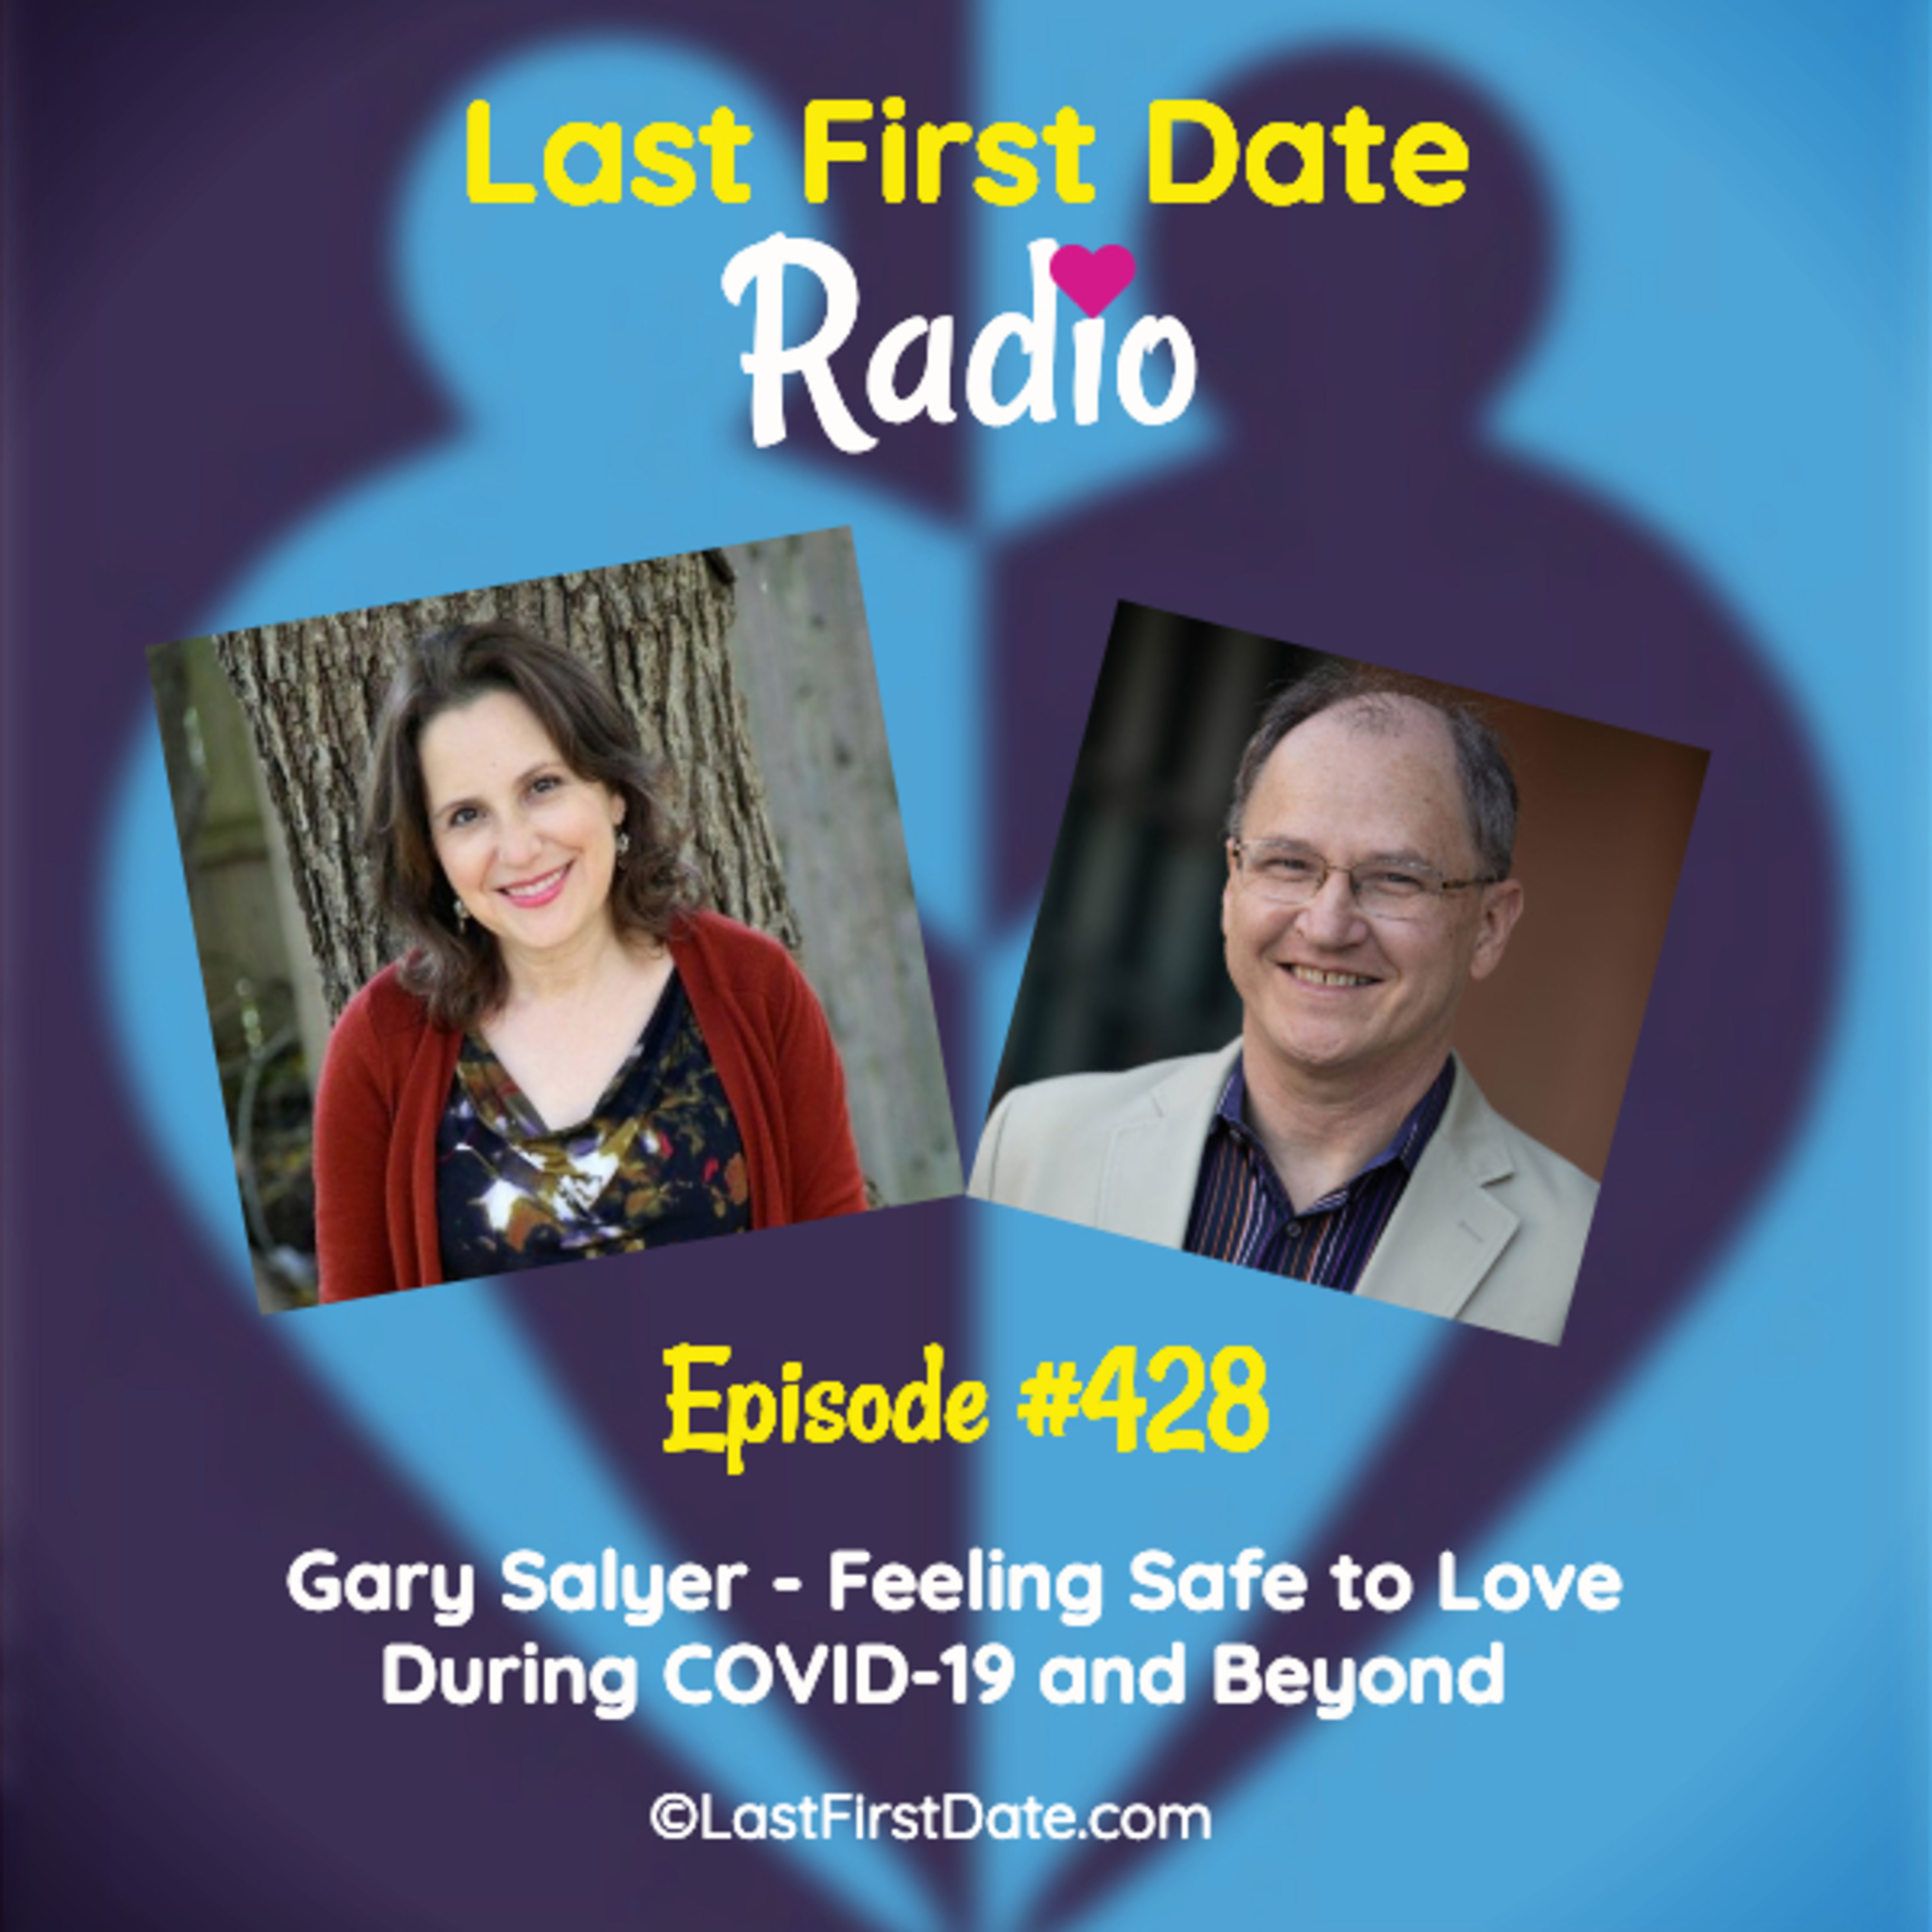 Last First Date Radio - EP 428: Gary Salyer- Feeling Safe to Love During COVID-19 and Beyond